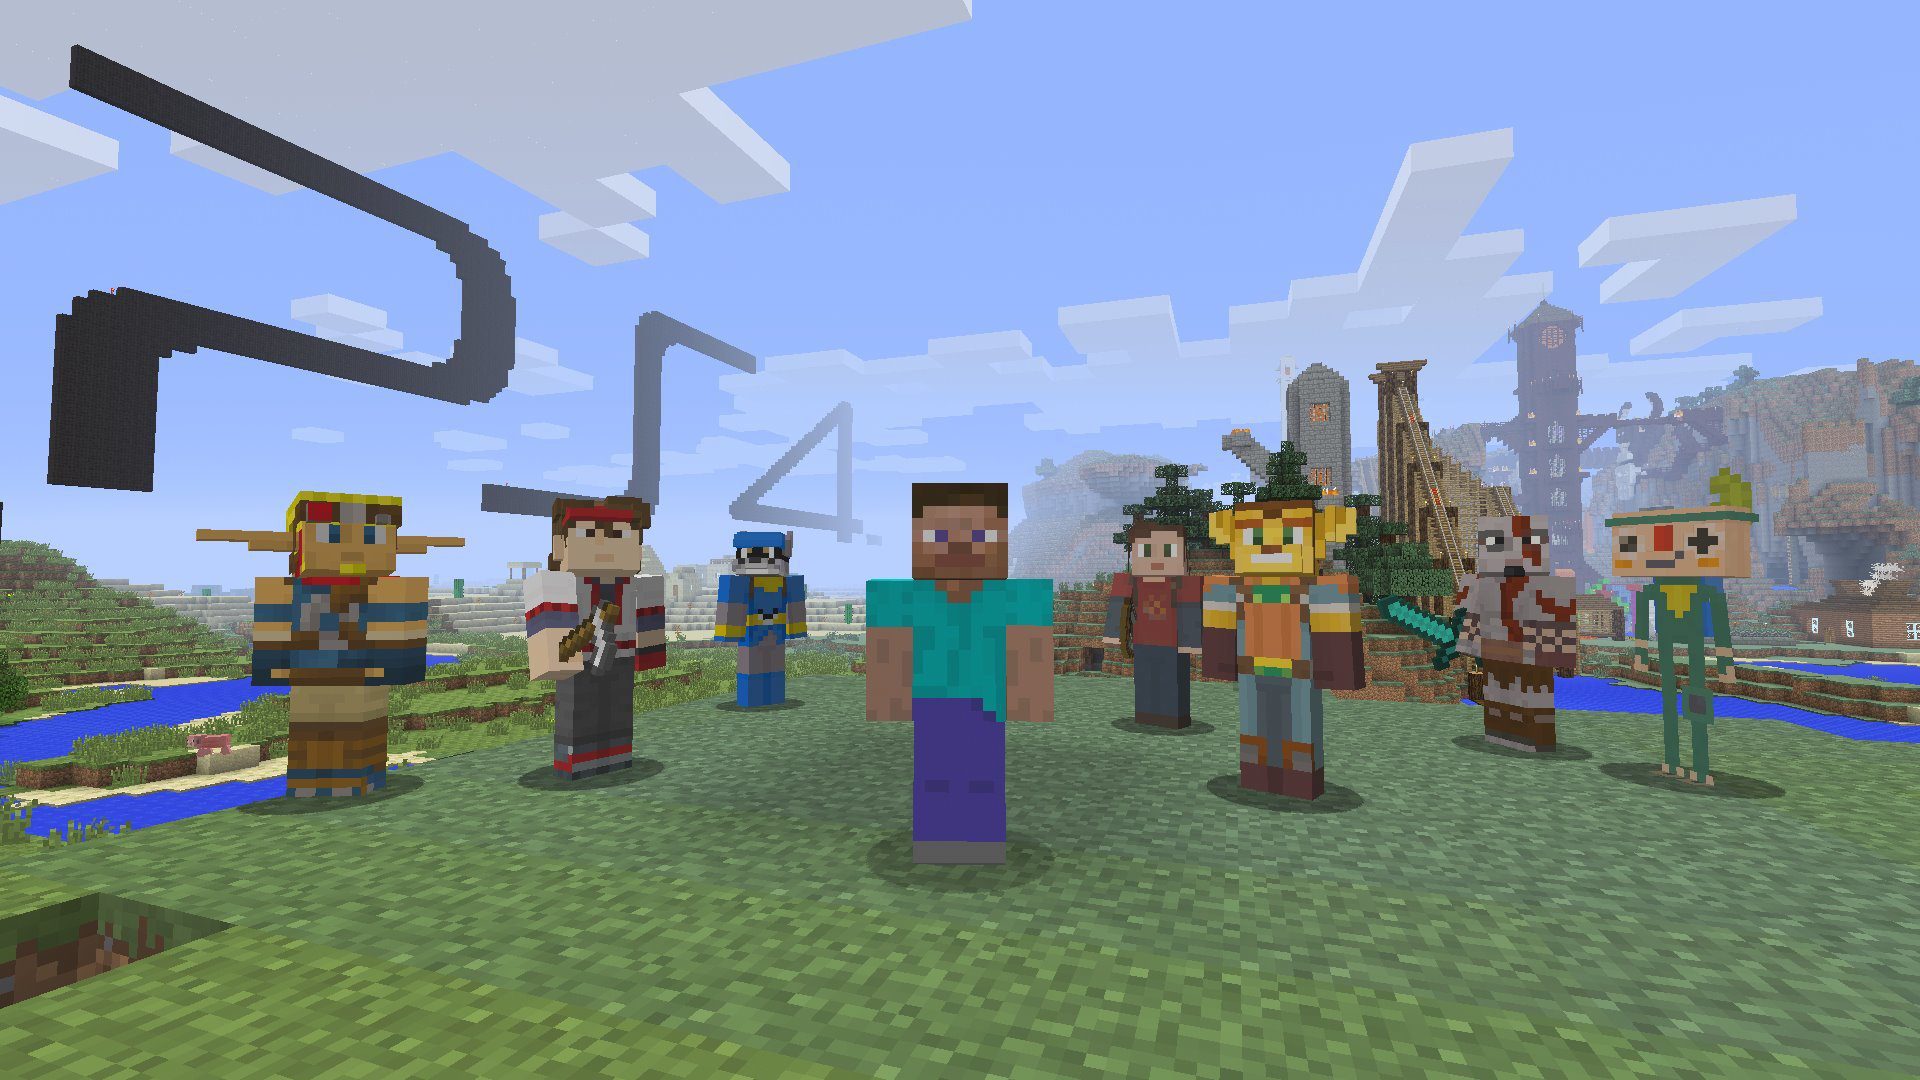 minecraft-screen-06-ps4-us-04sep14?$Medi